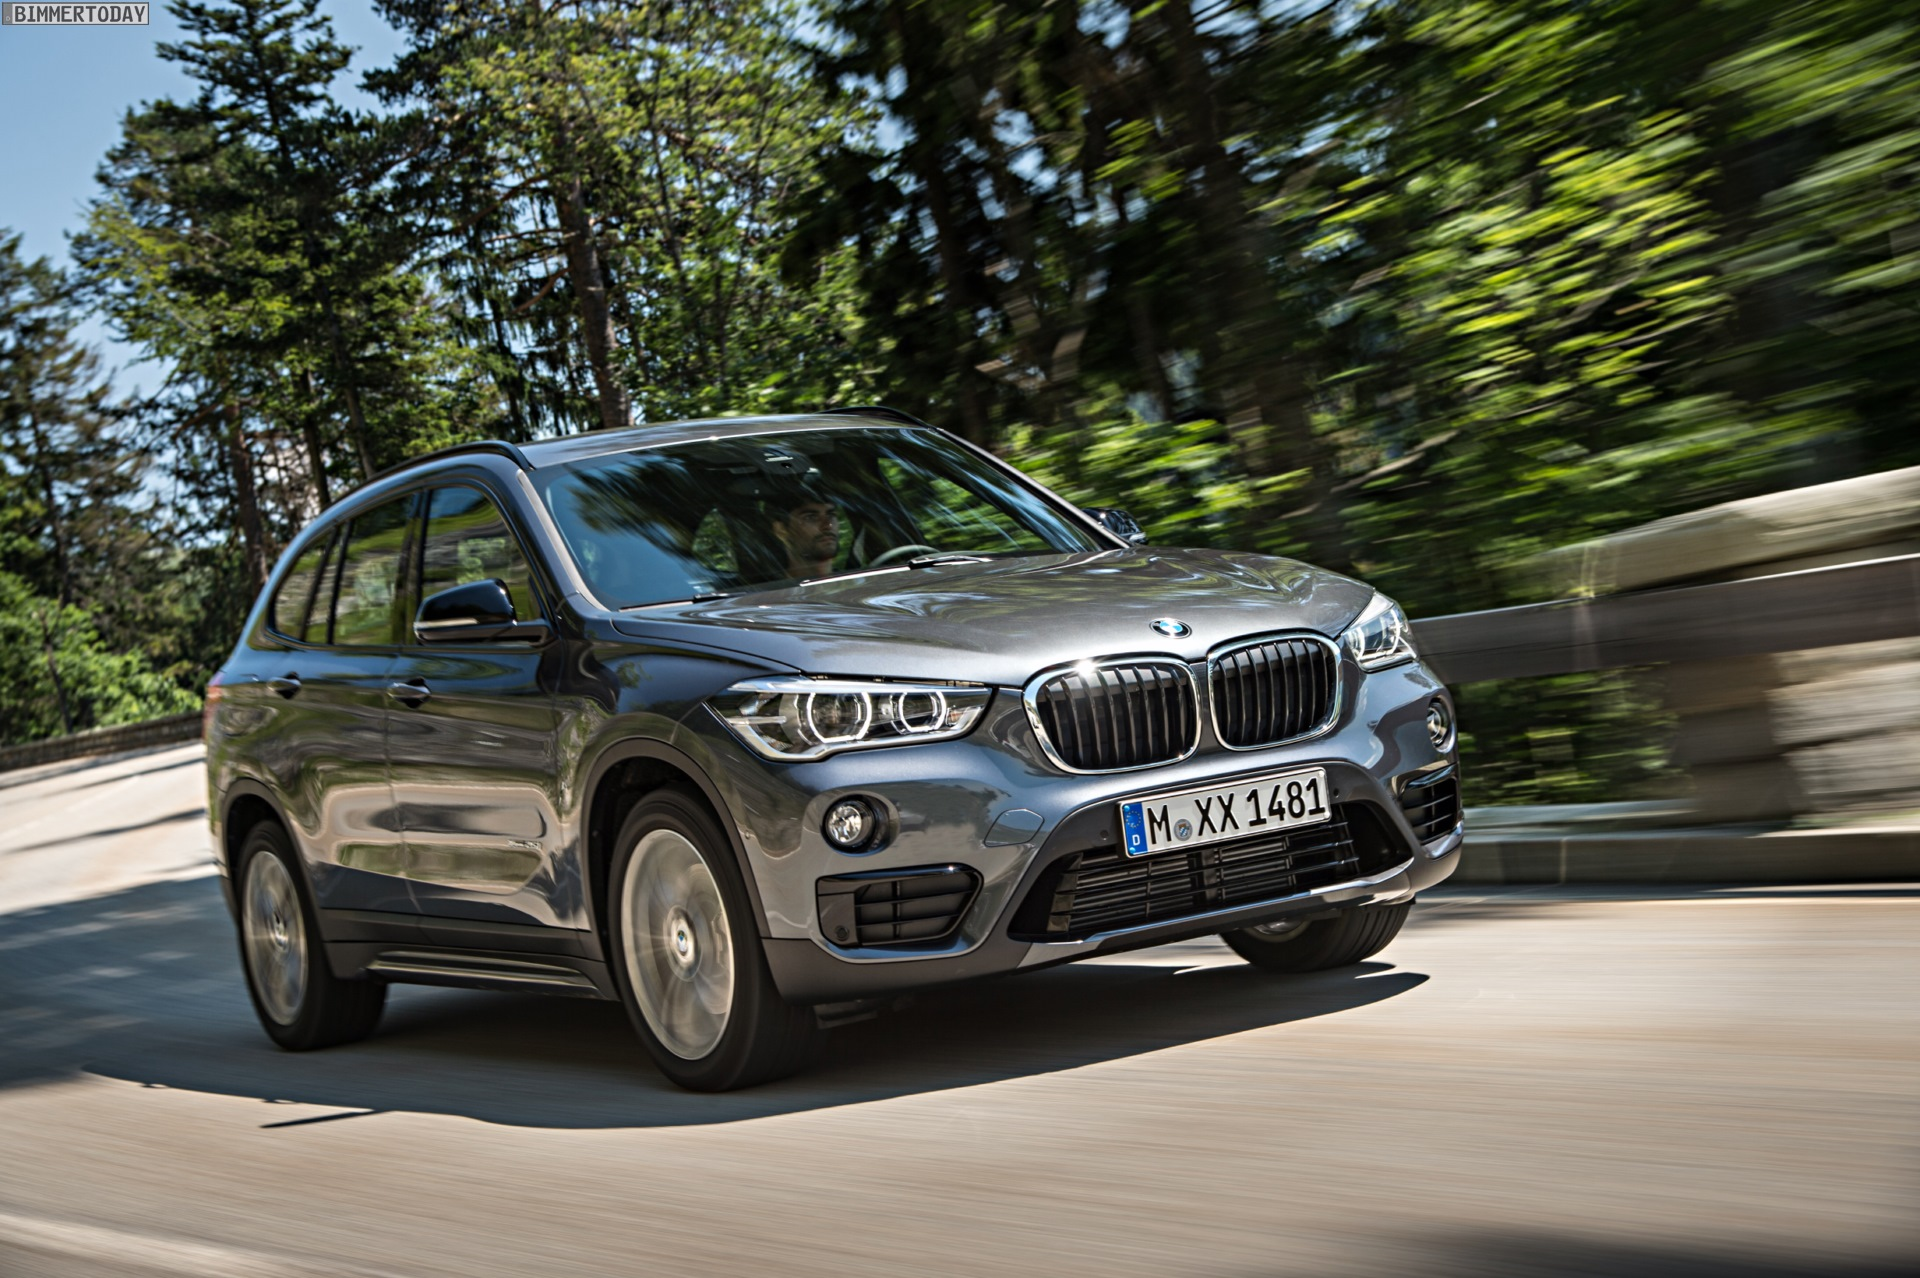 2015 Bmw X1 >> Bimmertoday gallery